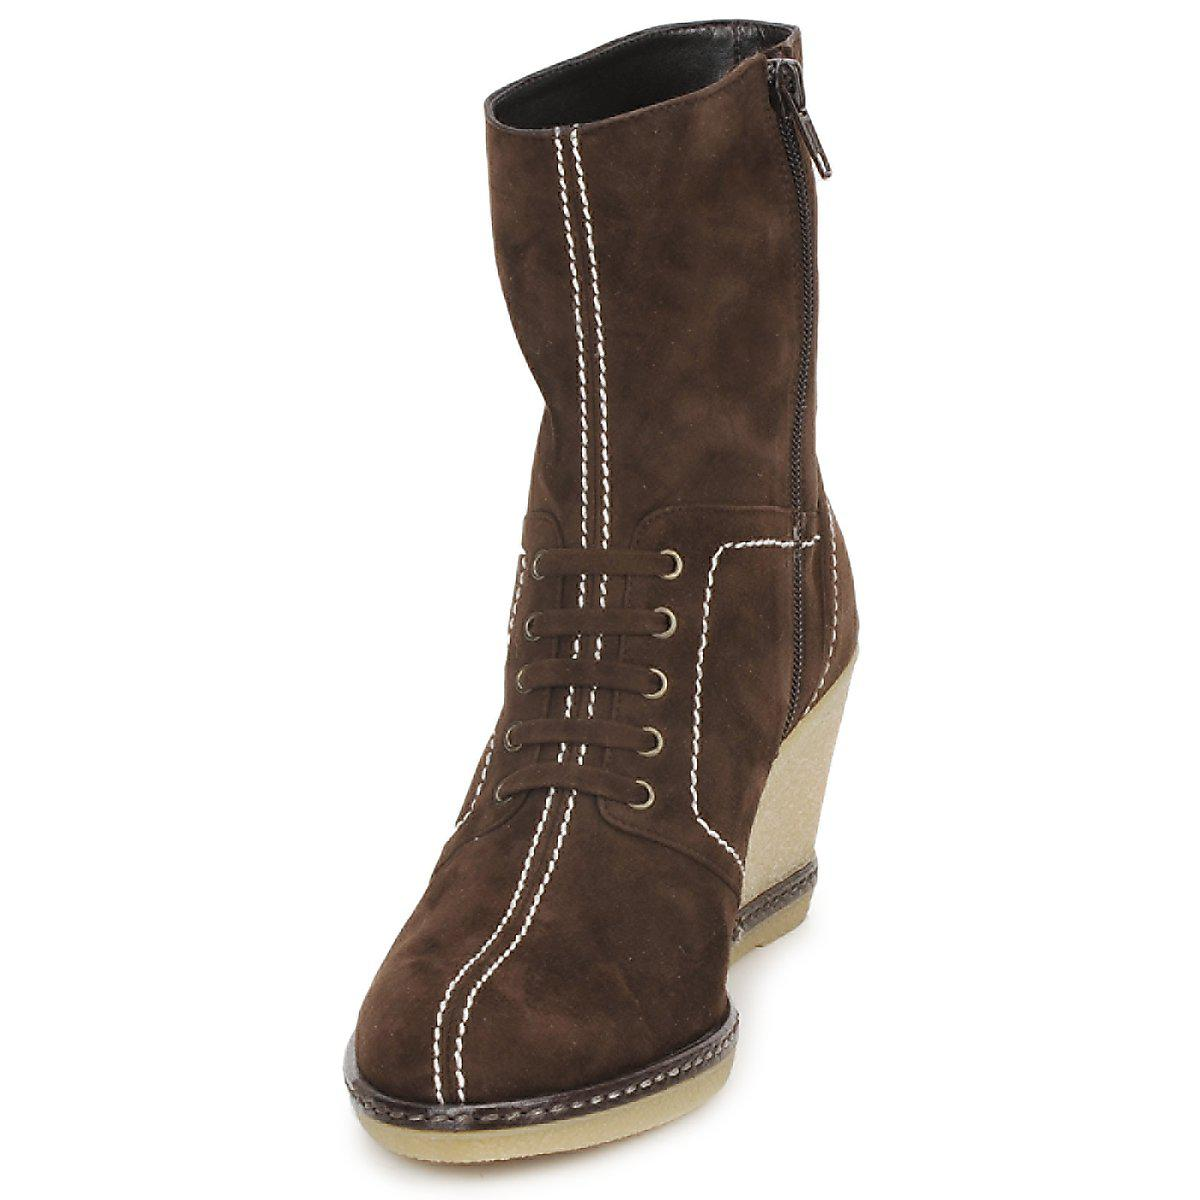 Amalfi by Rangoni MABALA women's Low Ankle Boots in Classic Online 3abDSKuNVB